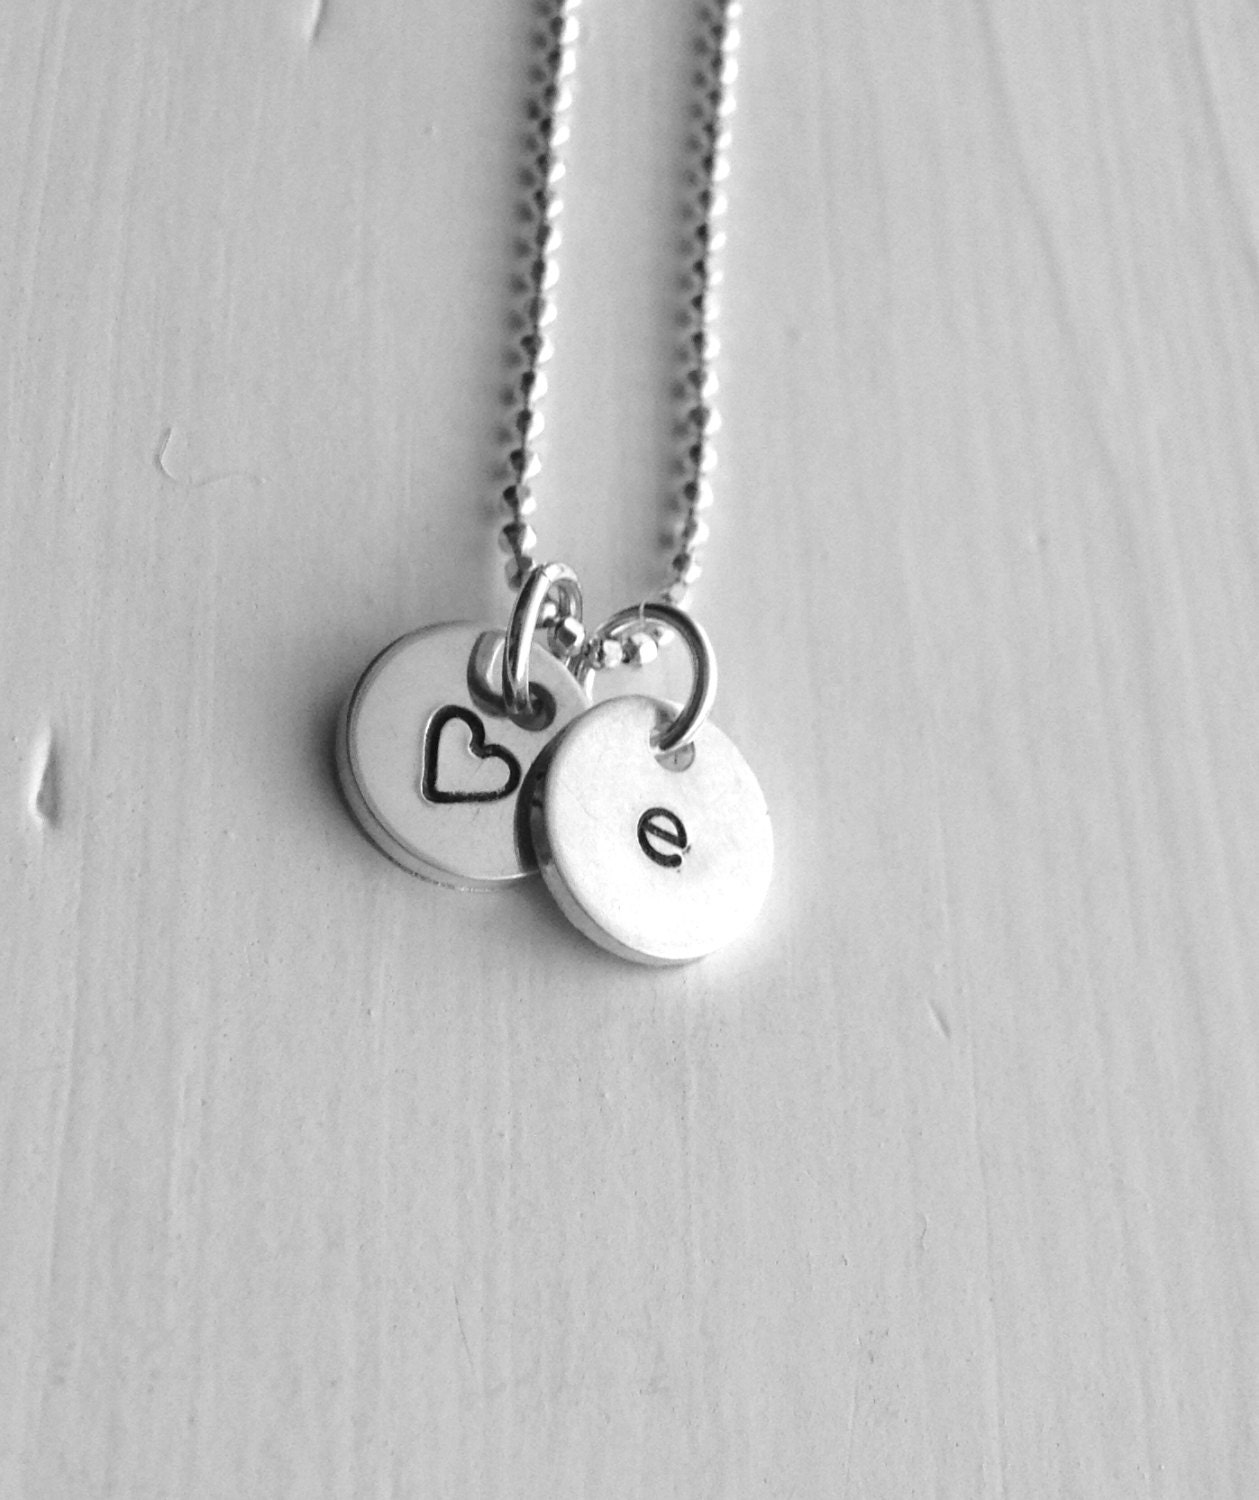 initial necklace letter e necklace tiny heart necklace personalized jewelry sterling silver jewelry all letters letter e necklace e